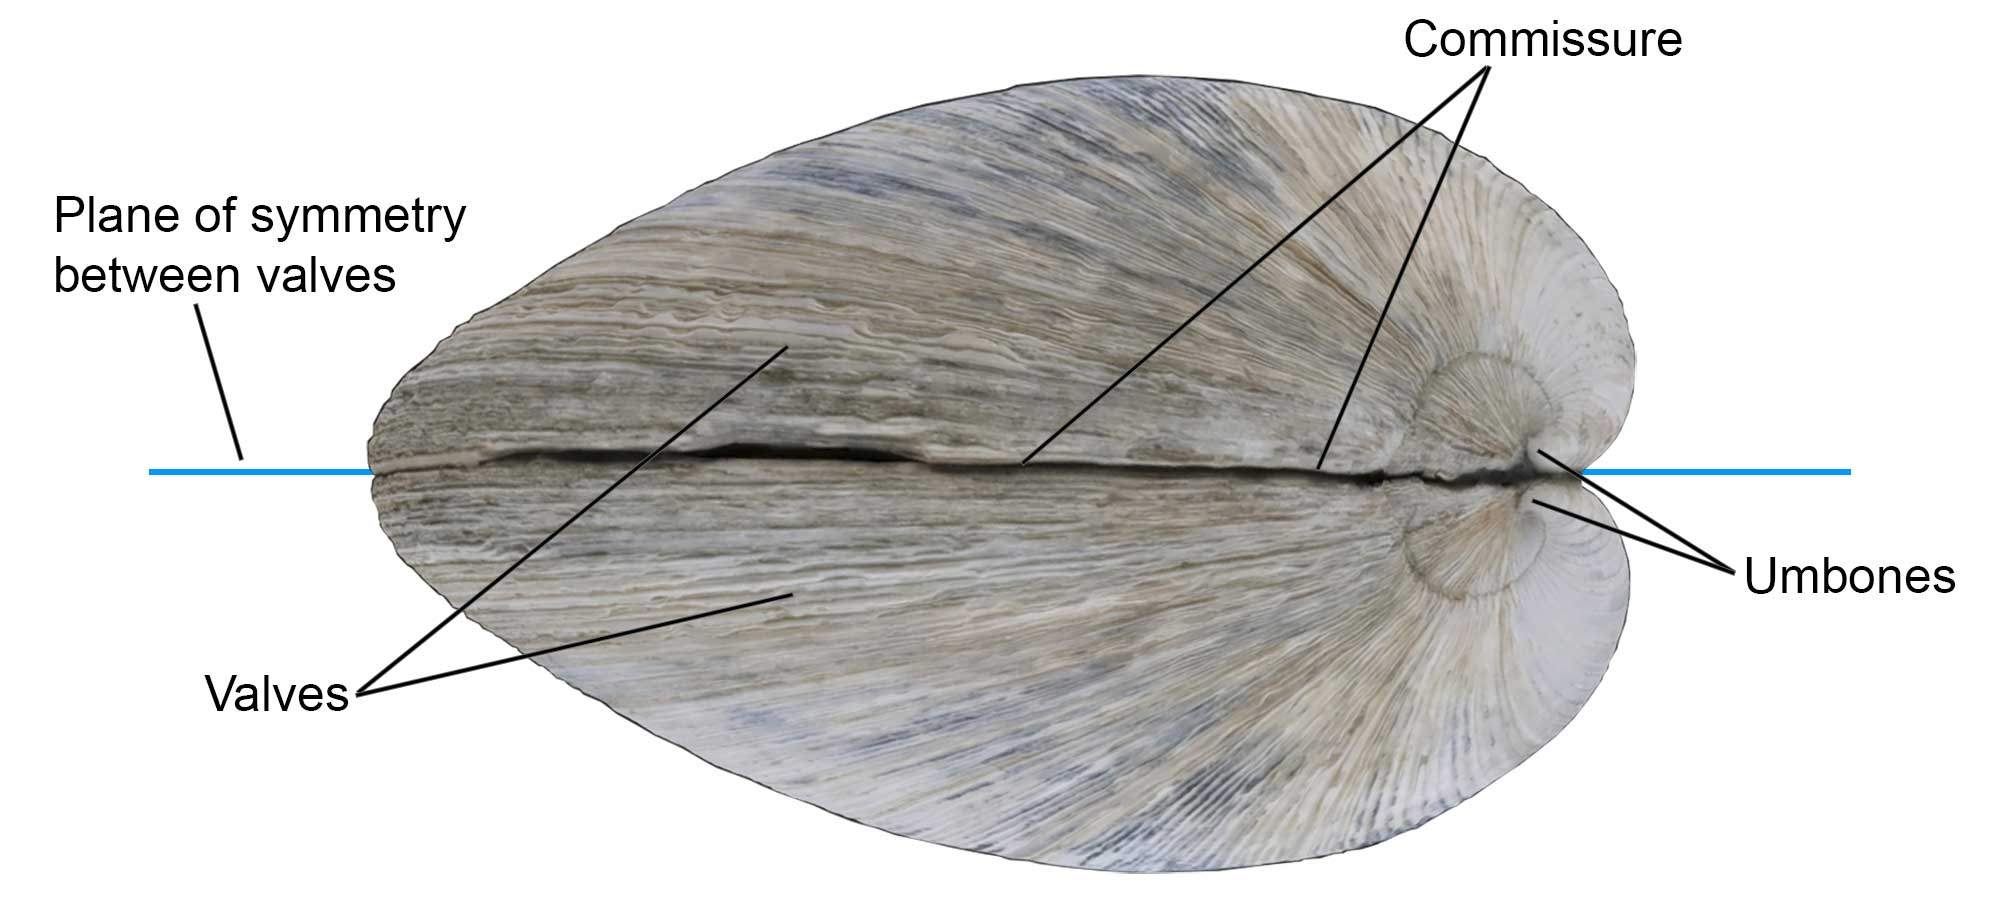 External features of the bivalve shell, including valves, commissure, and umbones.